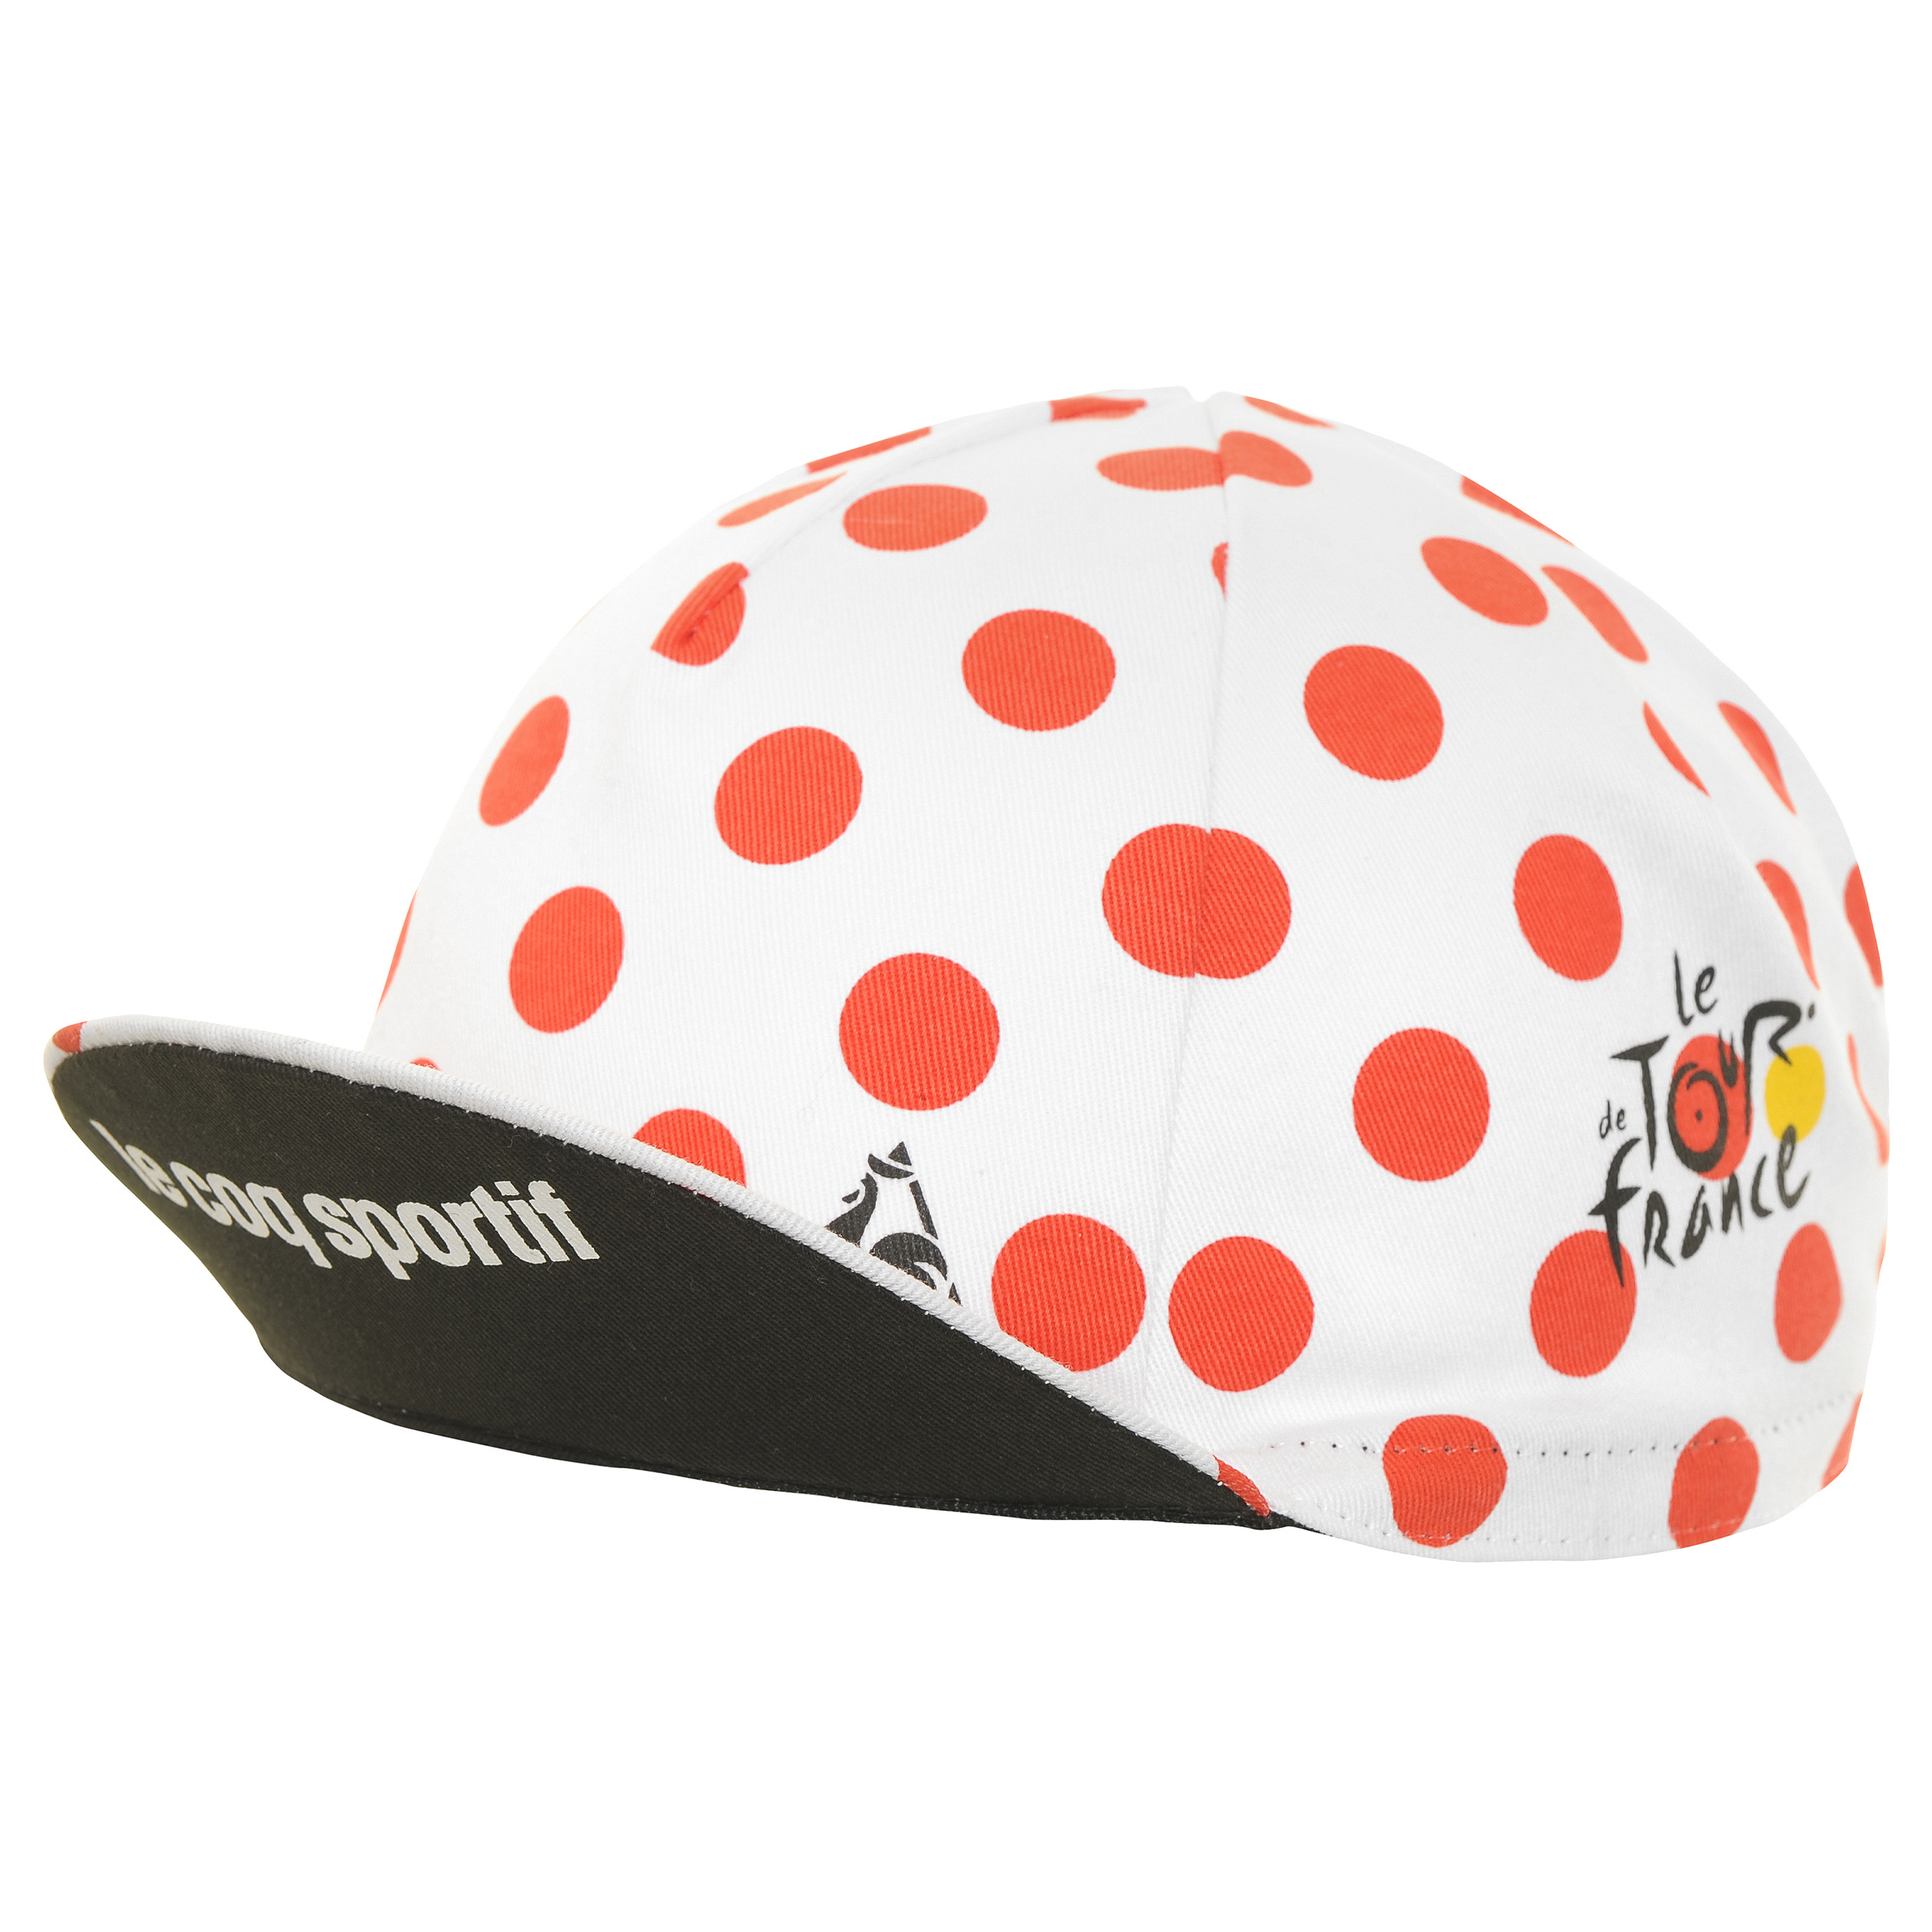 Le Tour de France Le Coq Sportif Cycling Cap - Polka